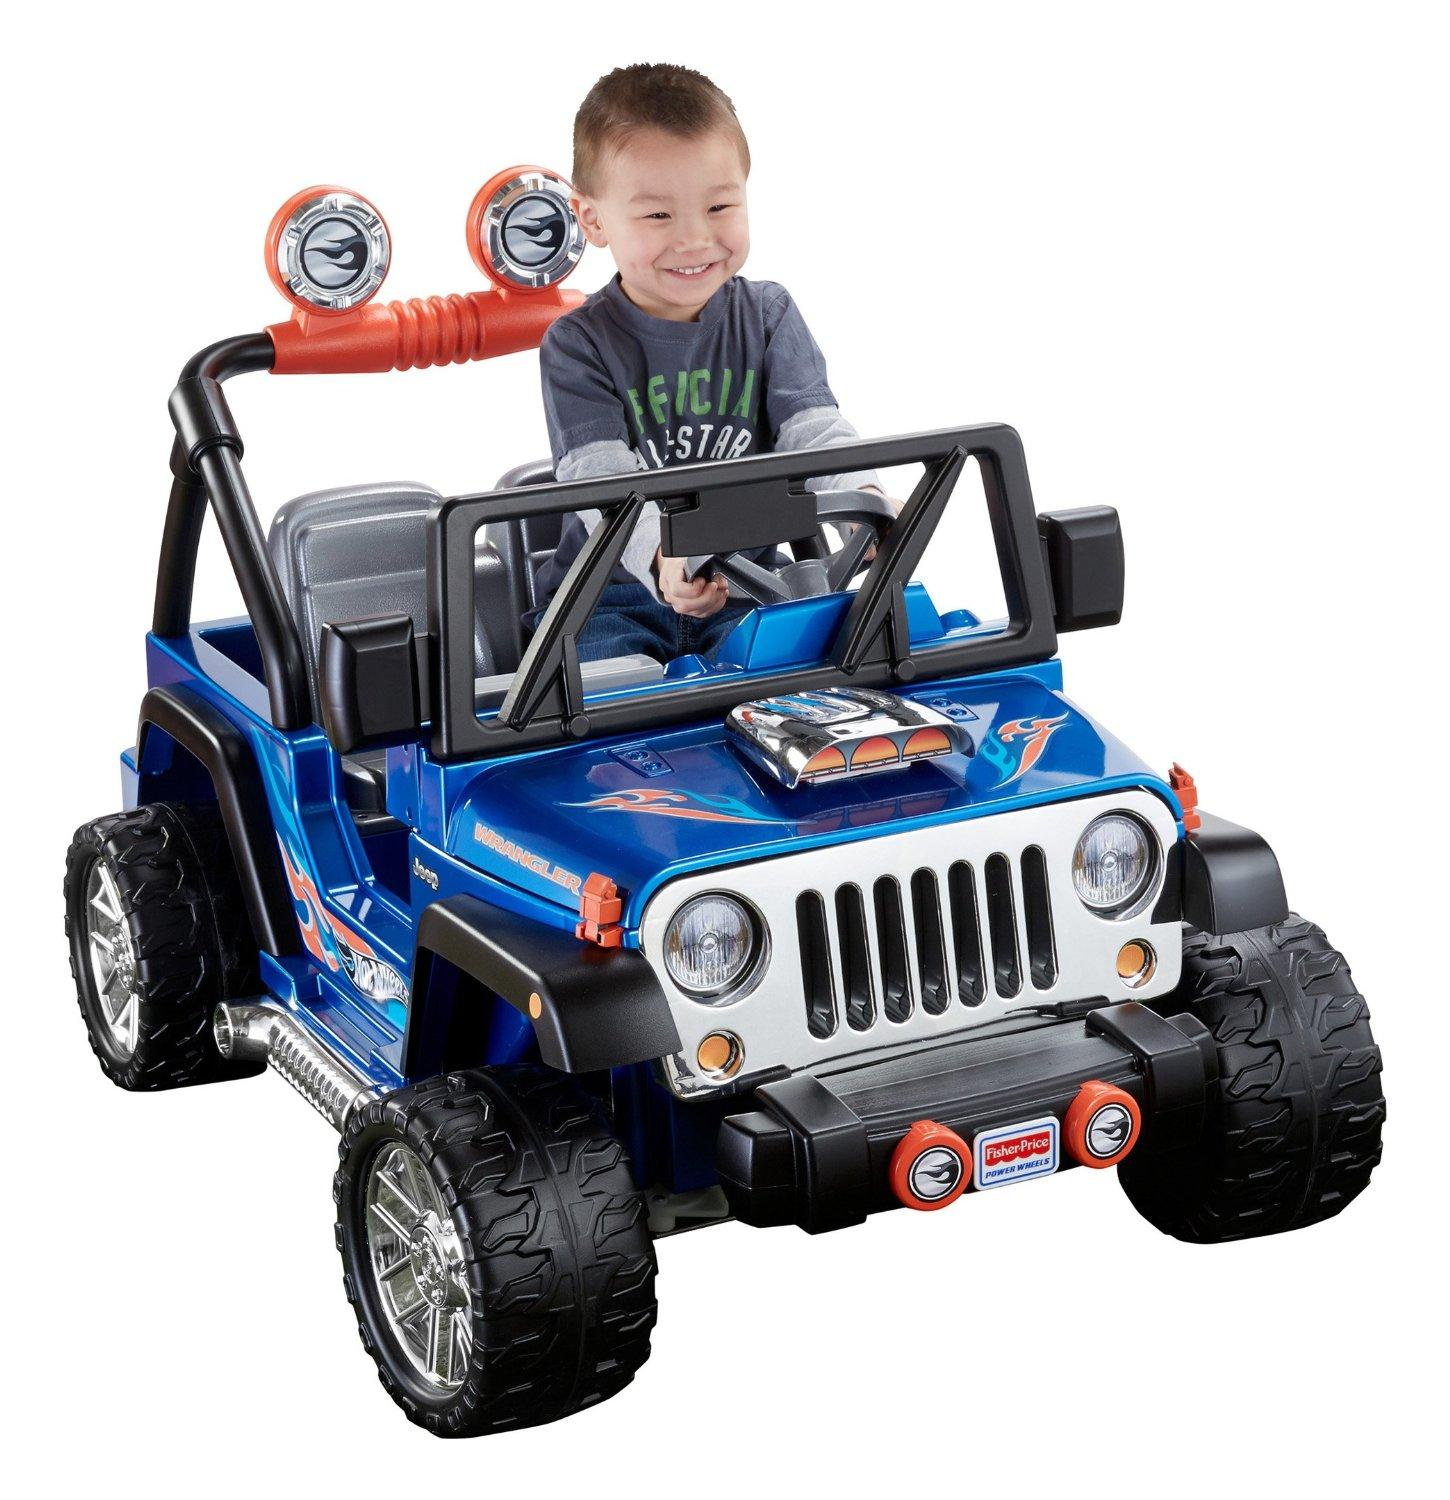 Price Of A Used Jeep Wrangler: Amazon.com: Fisher-Price Power Wheels Hot Wheels Jeep